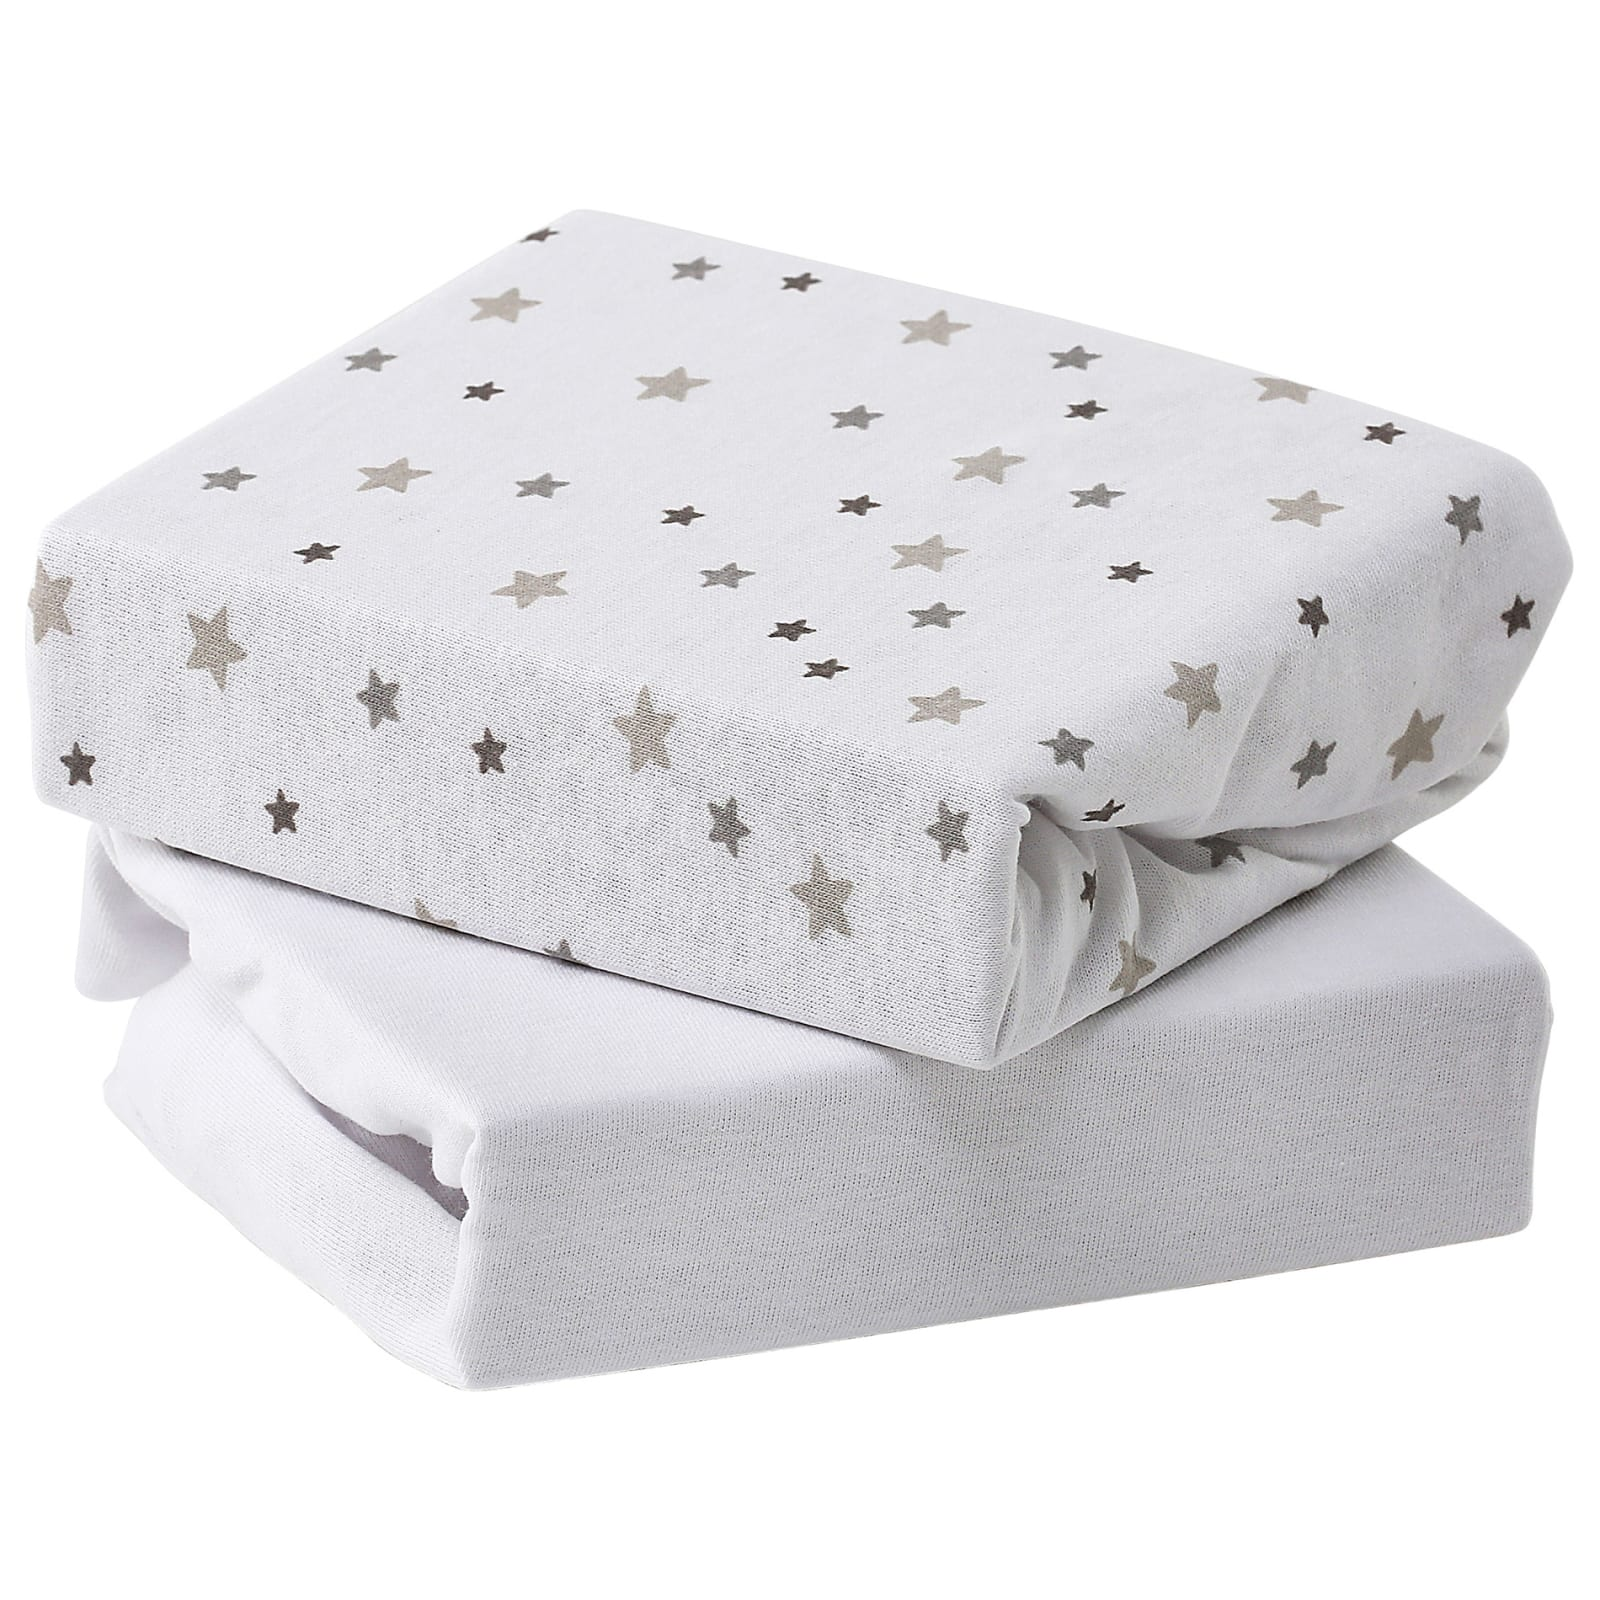 Baby Elegance Fitted Sheet Crib/Cradle - Happy Baby